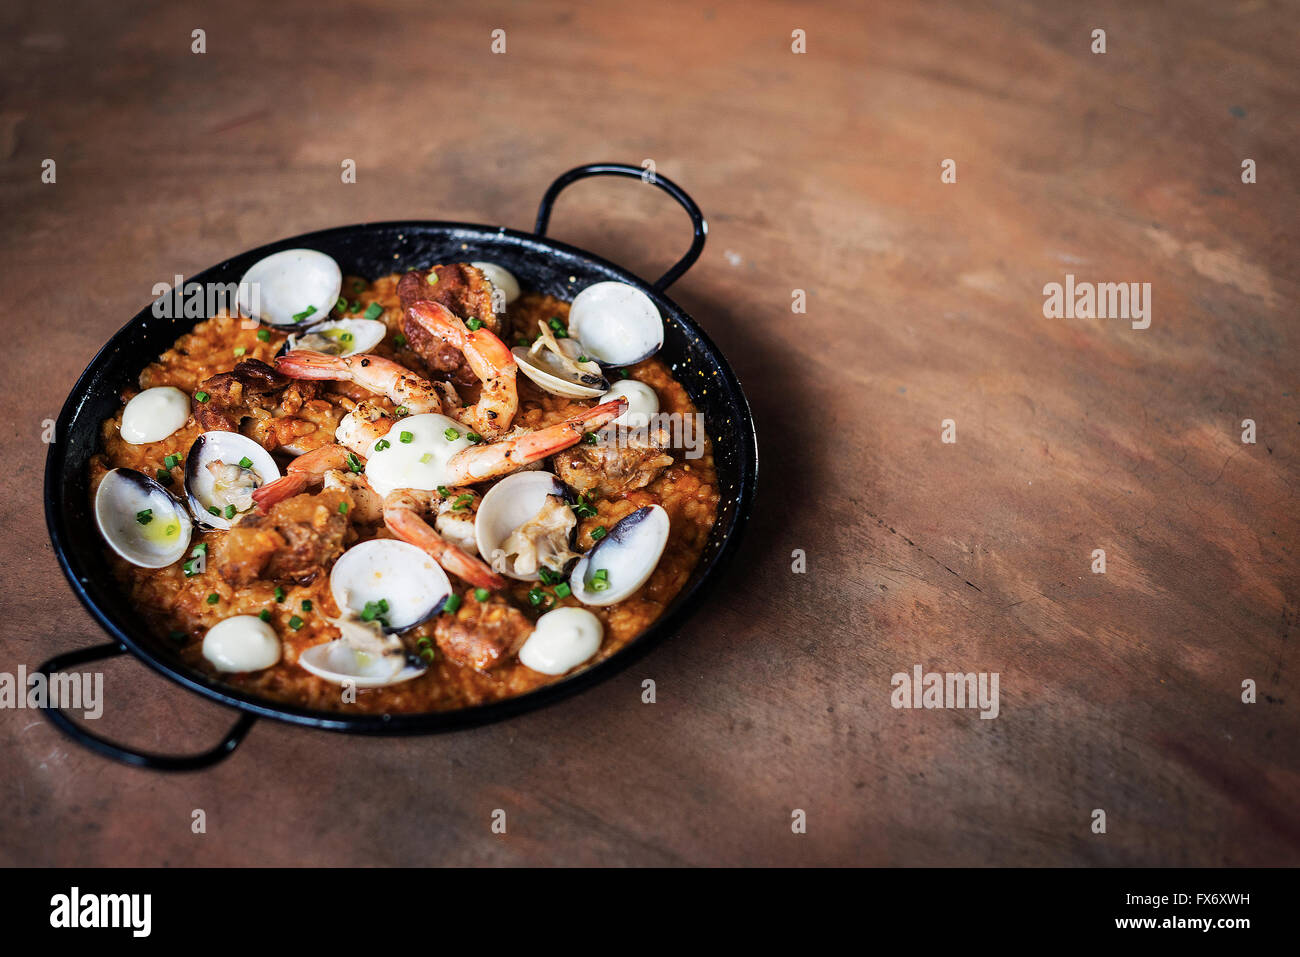 seafood and rice paella traditional famous spanish food - Stock Image